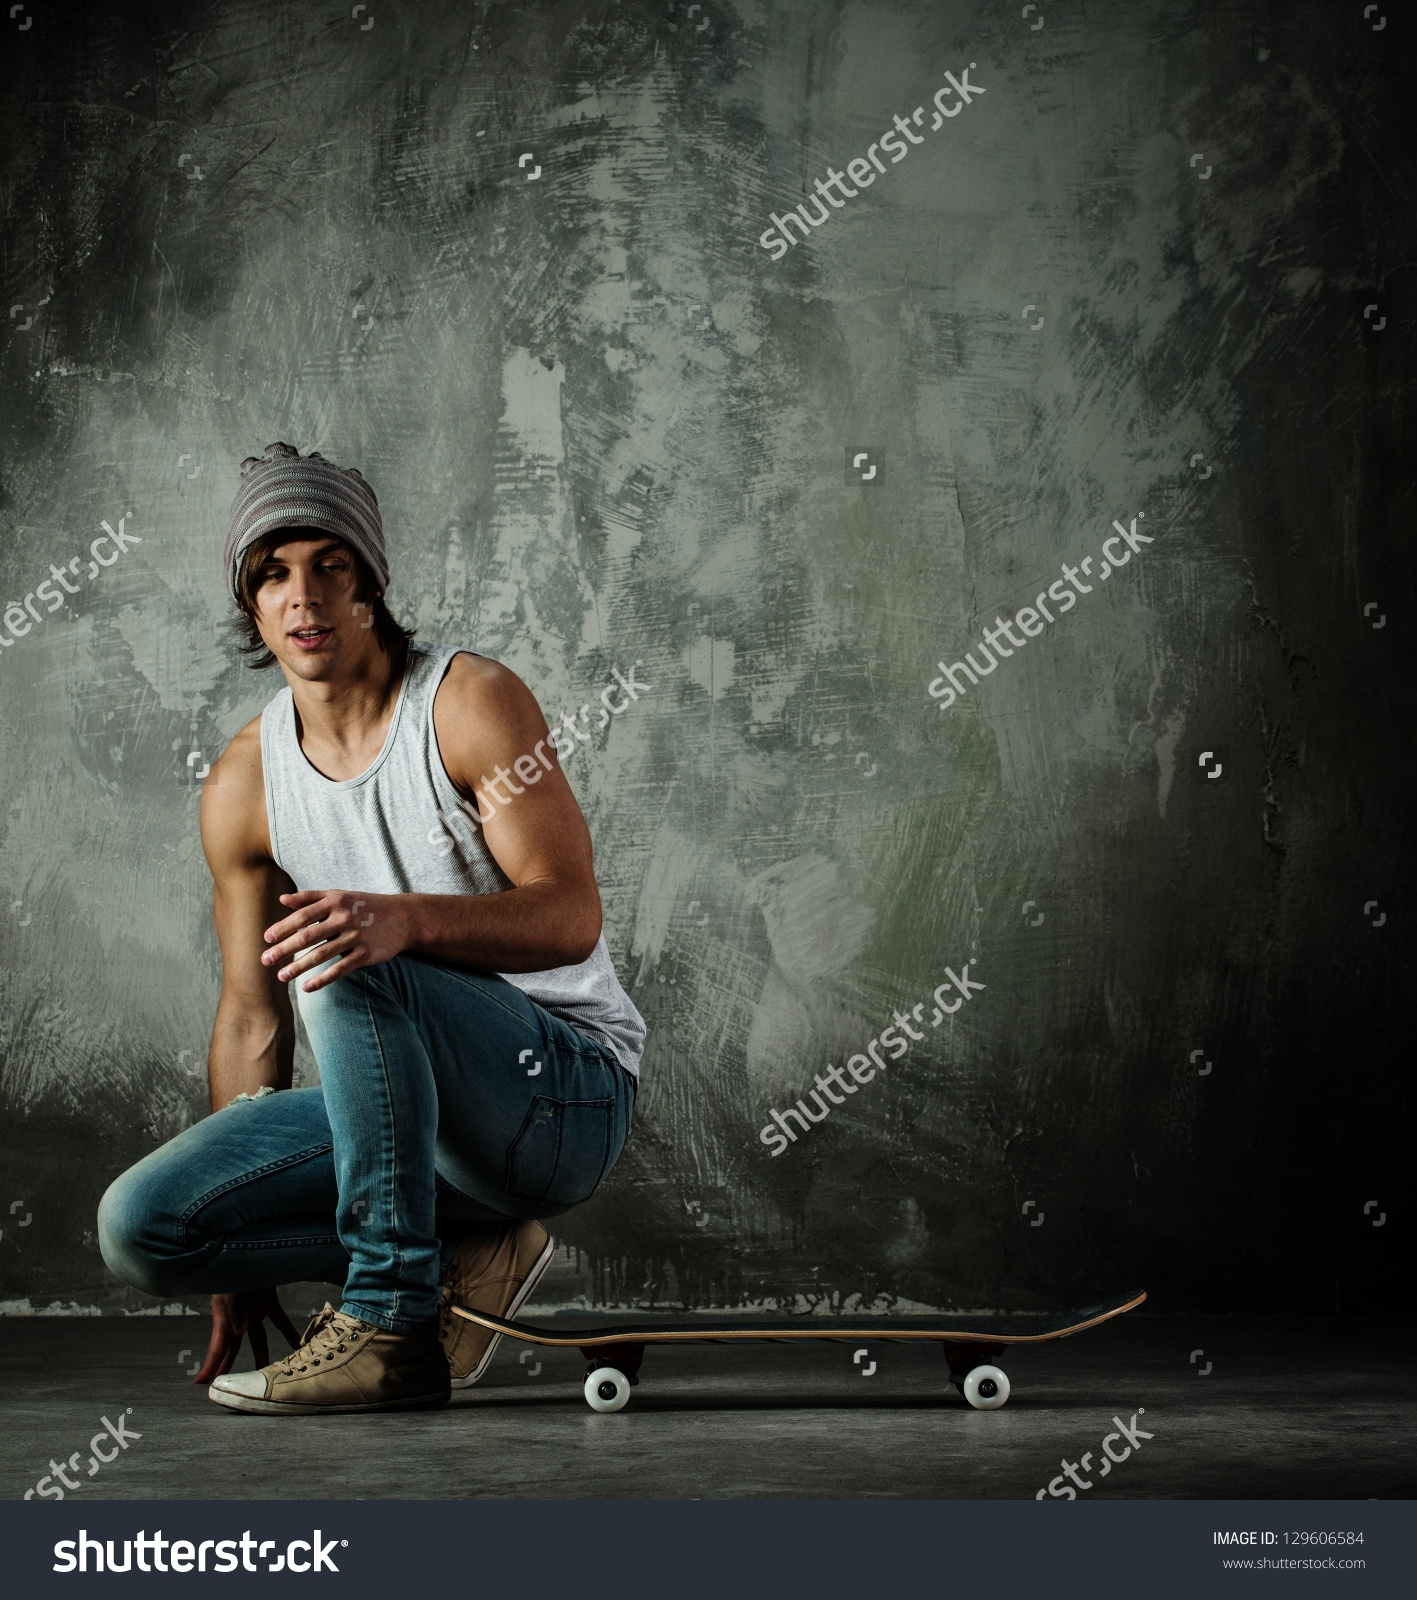 Man sitting on skateboard clipart.